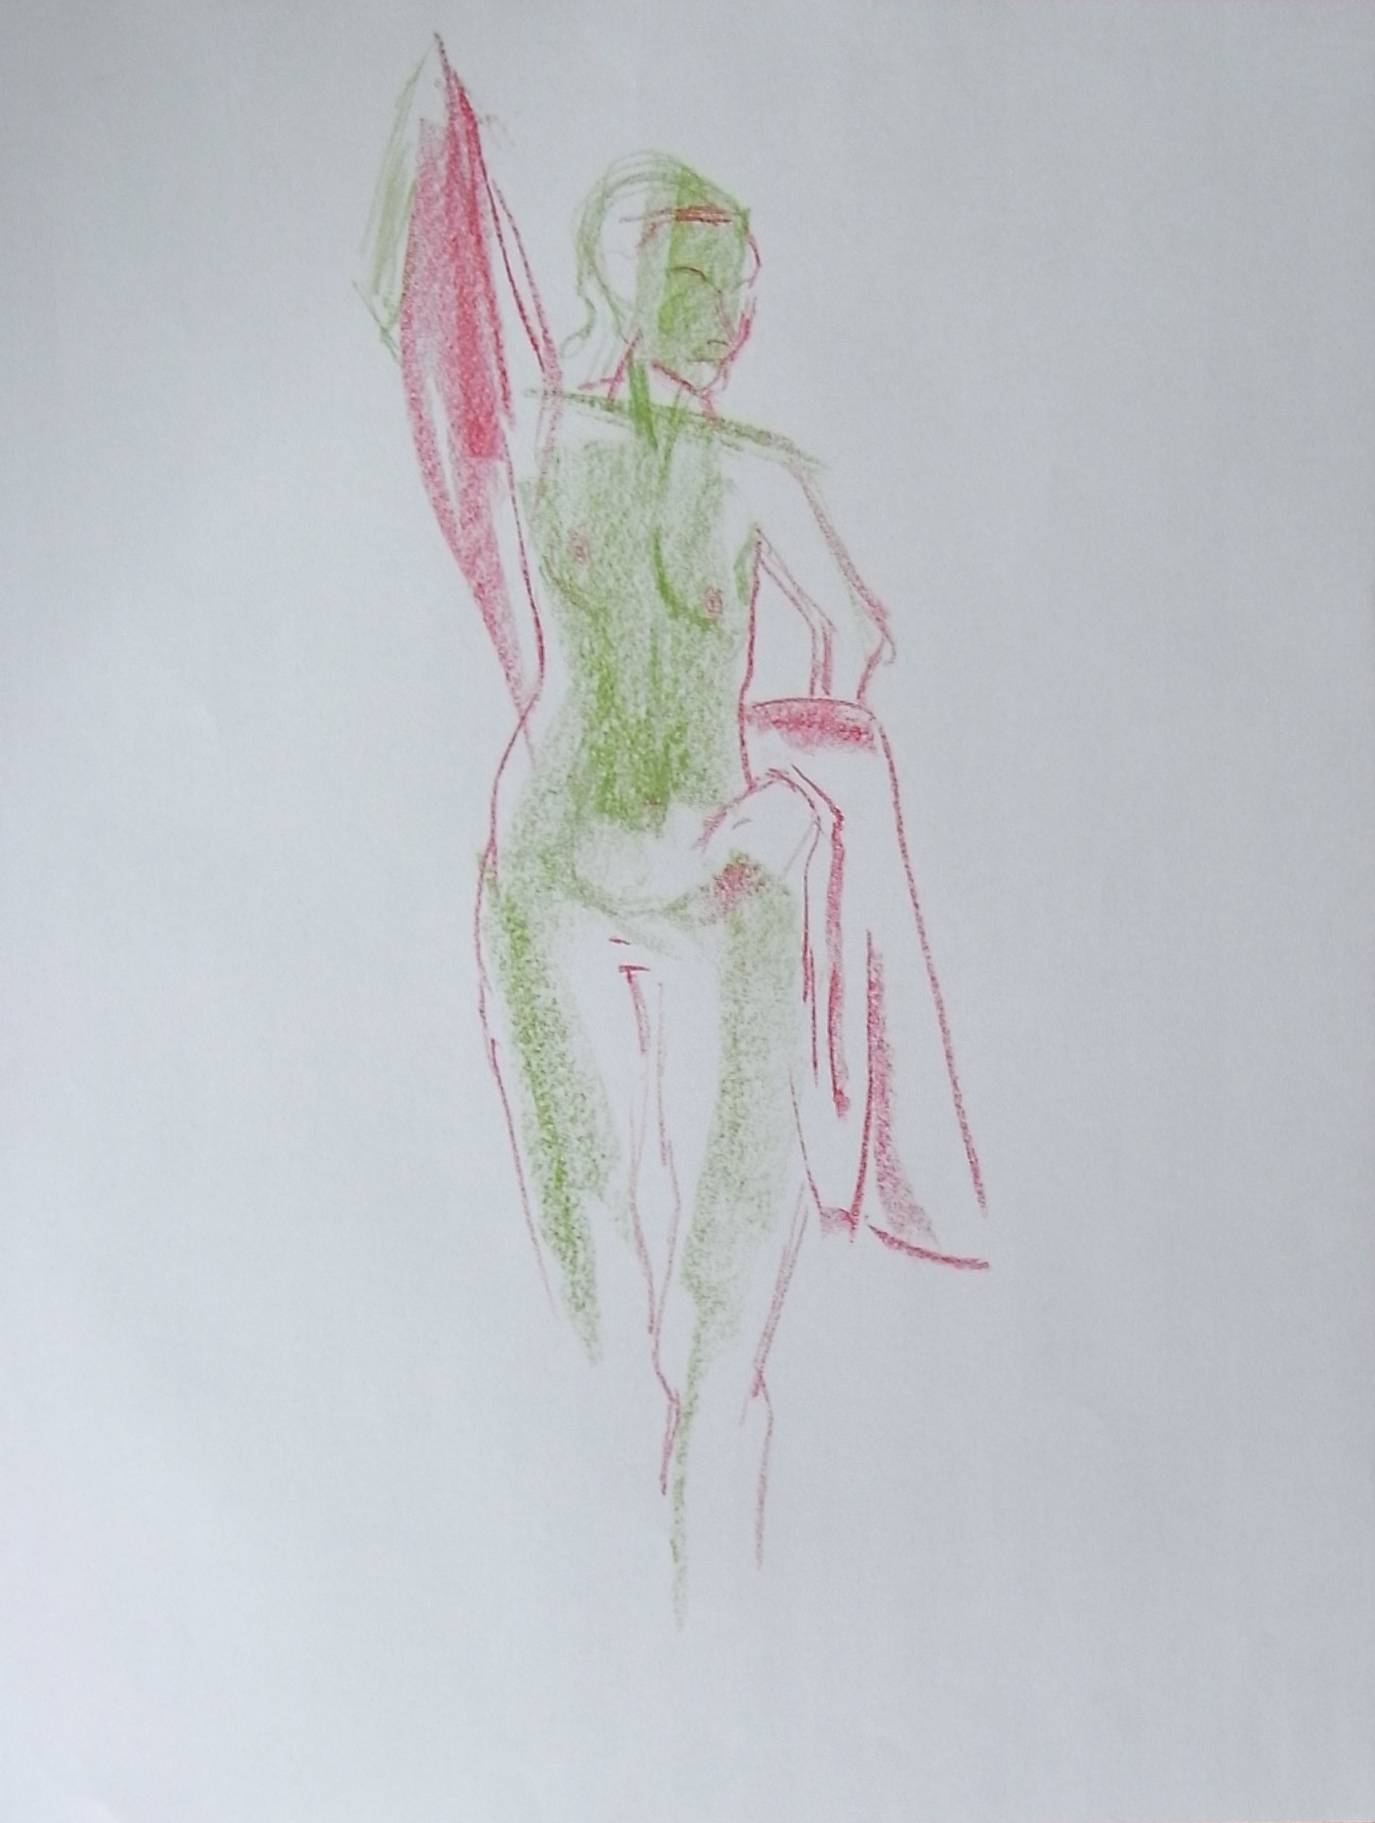 pastel drawing of a woman with a green body and red cloth.